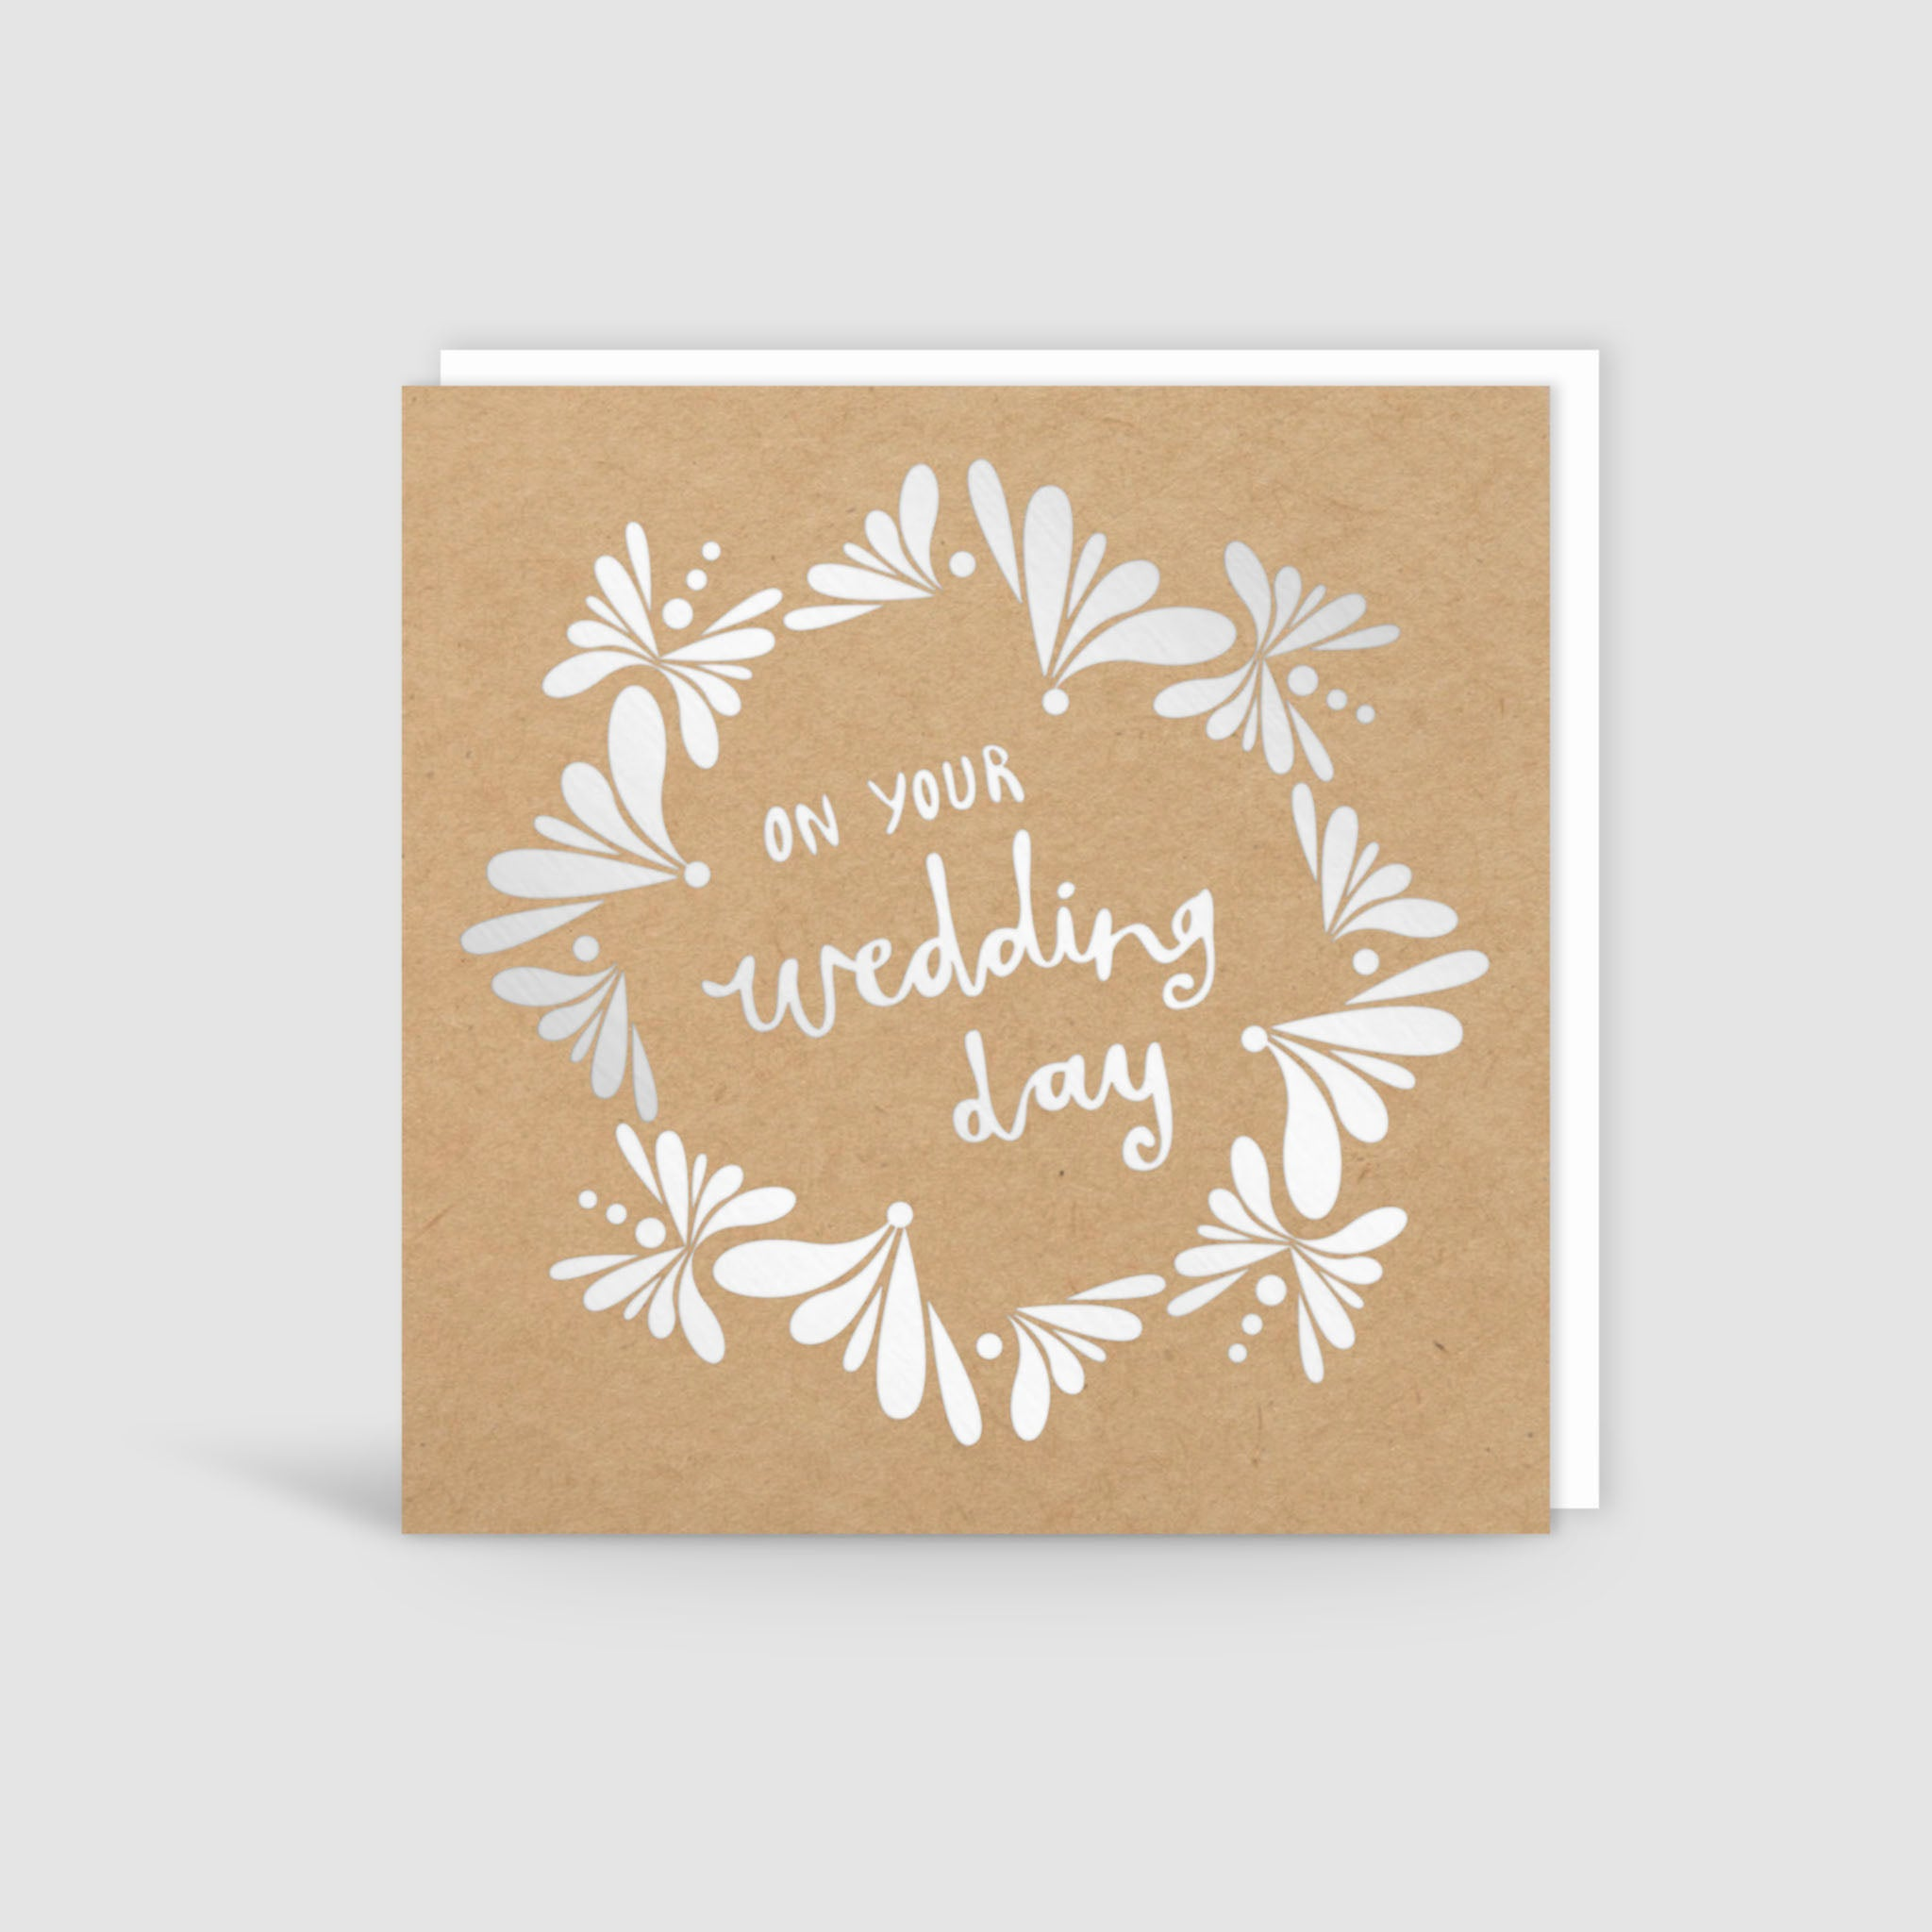 On Your Wedding Day Silver Foil Card